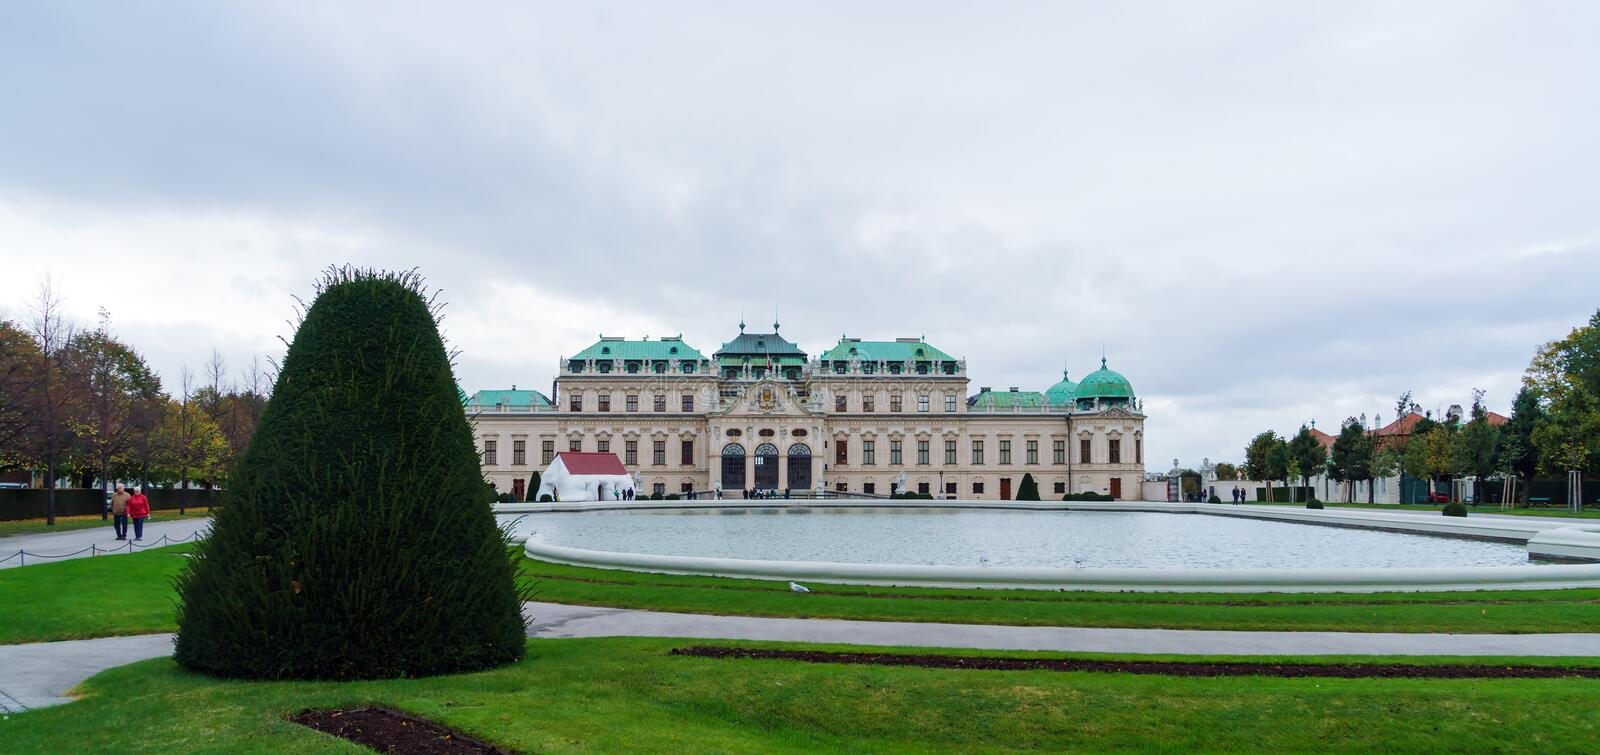 Upper Belvedere palace 1717-1723, Vienna, Austria. Vienna, Austria - October 22, 2017: Upper Belvedere baroque palace 1717-1723 stock photos